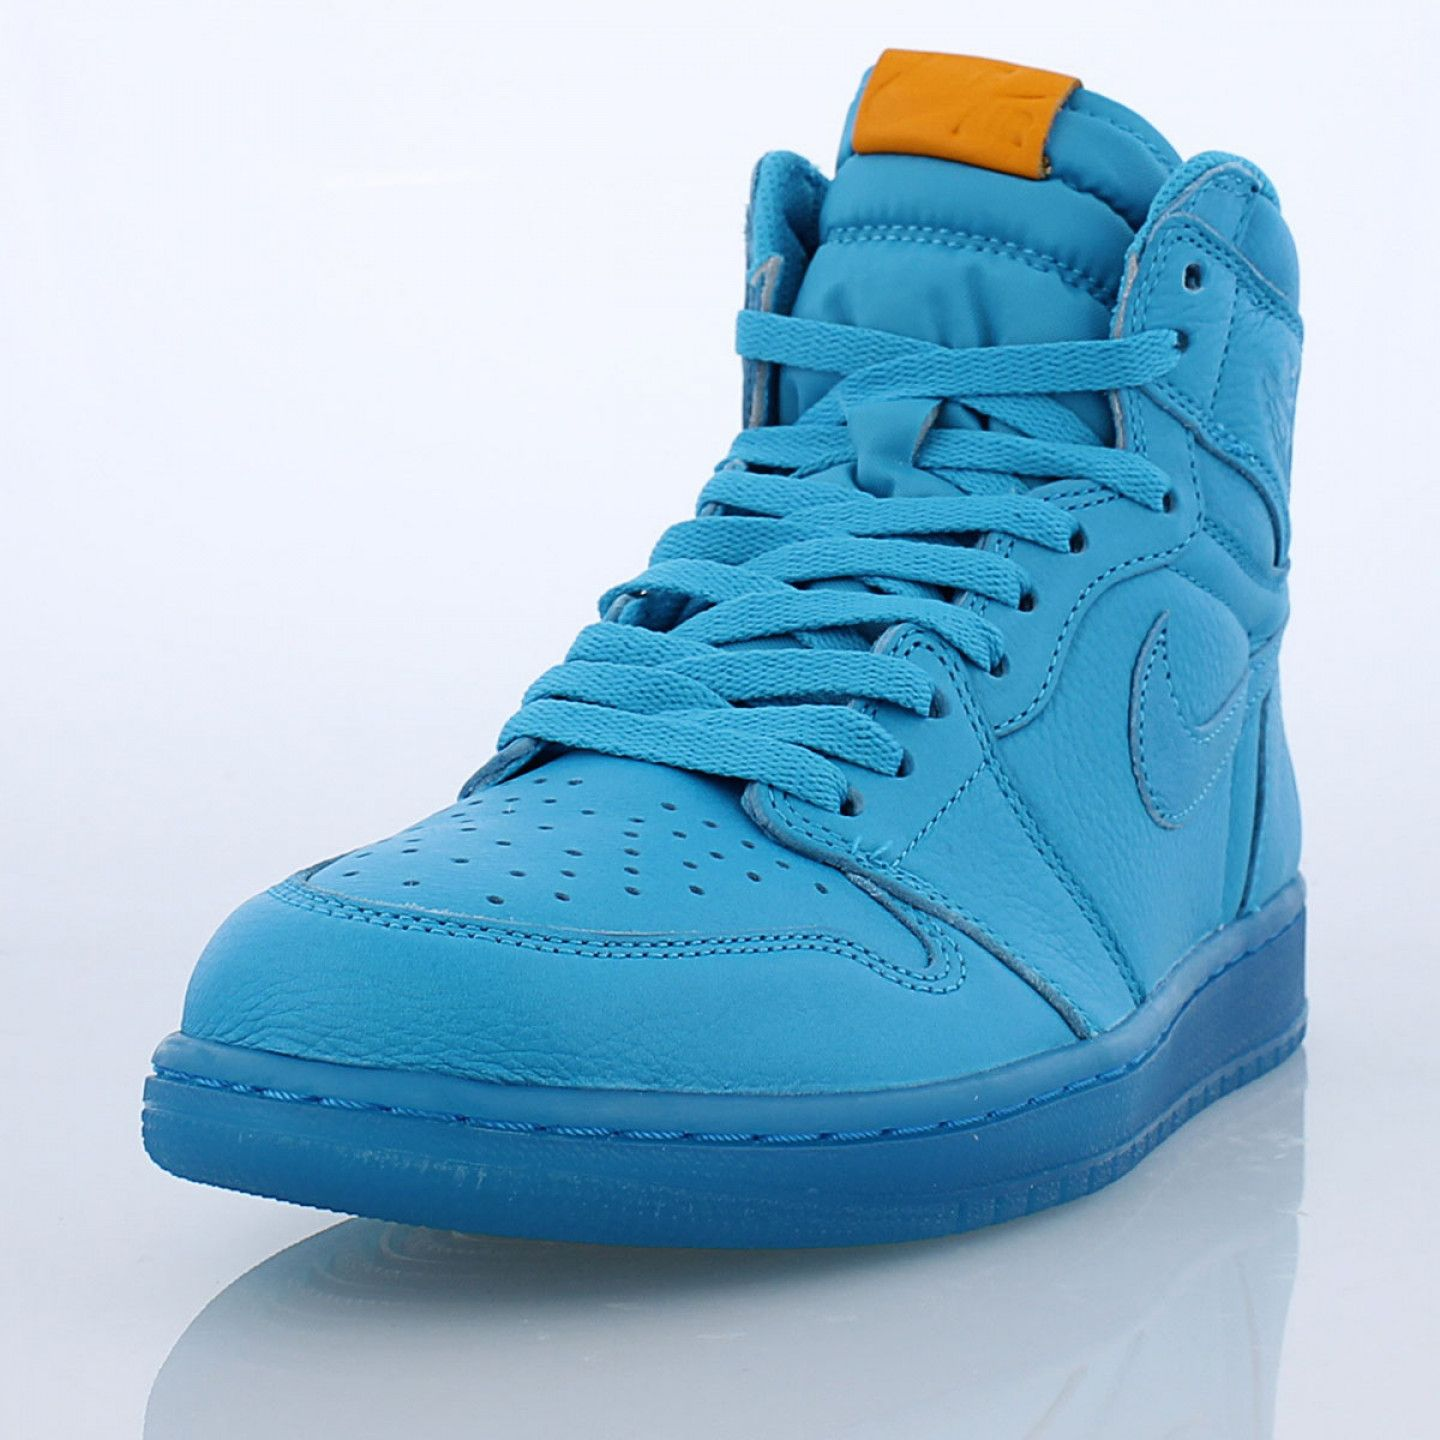 Footwear · Inspired by the classic Gatorade flavors ...